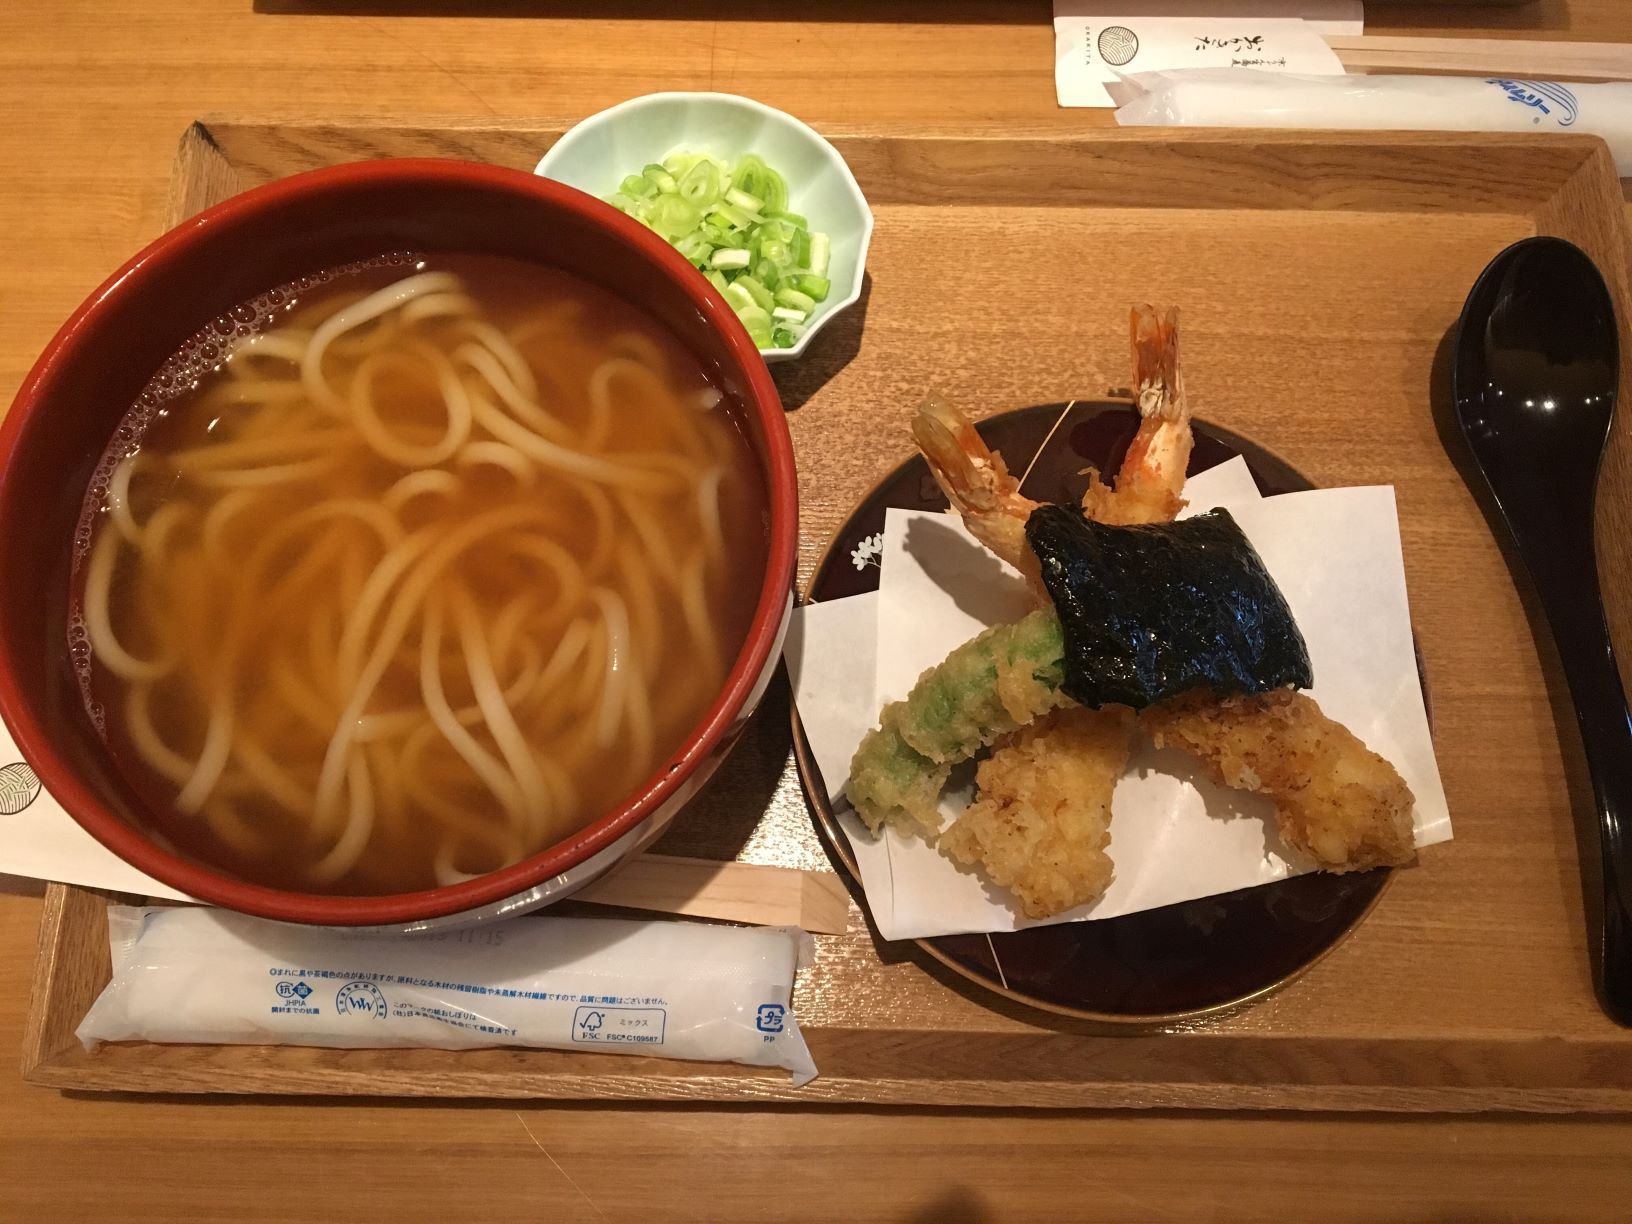 My favorite place to eat udon!